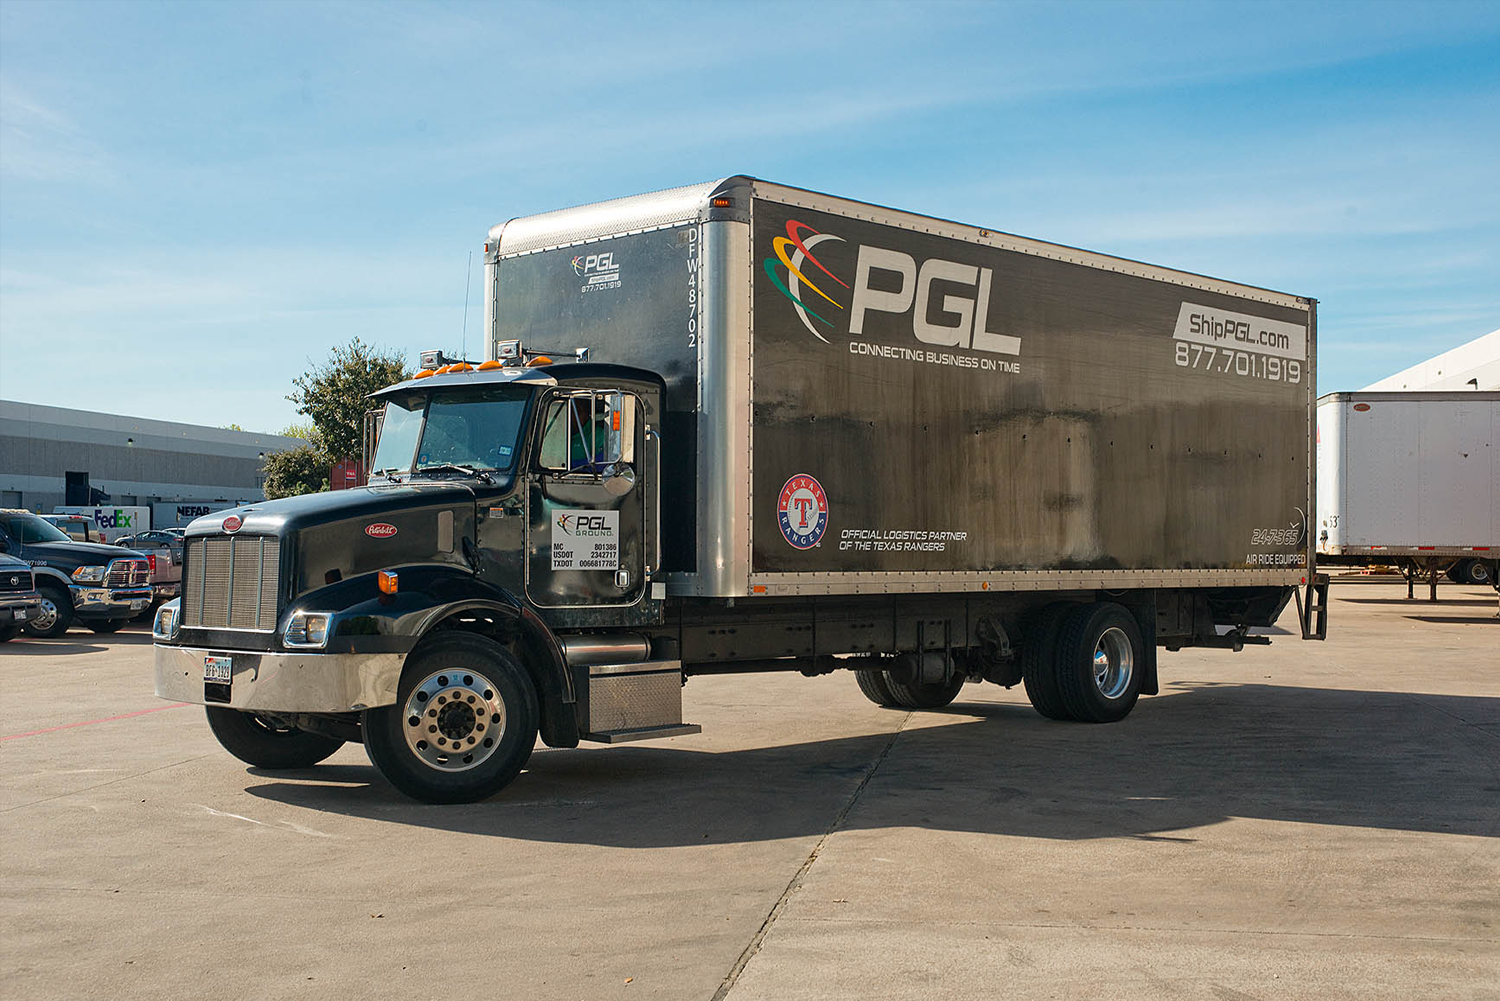 GPL Black Box truck at PHX location